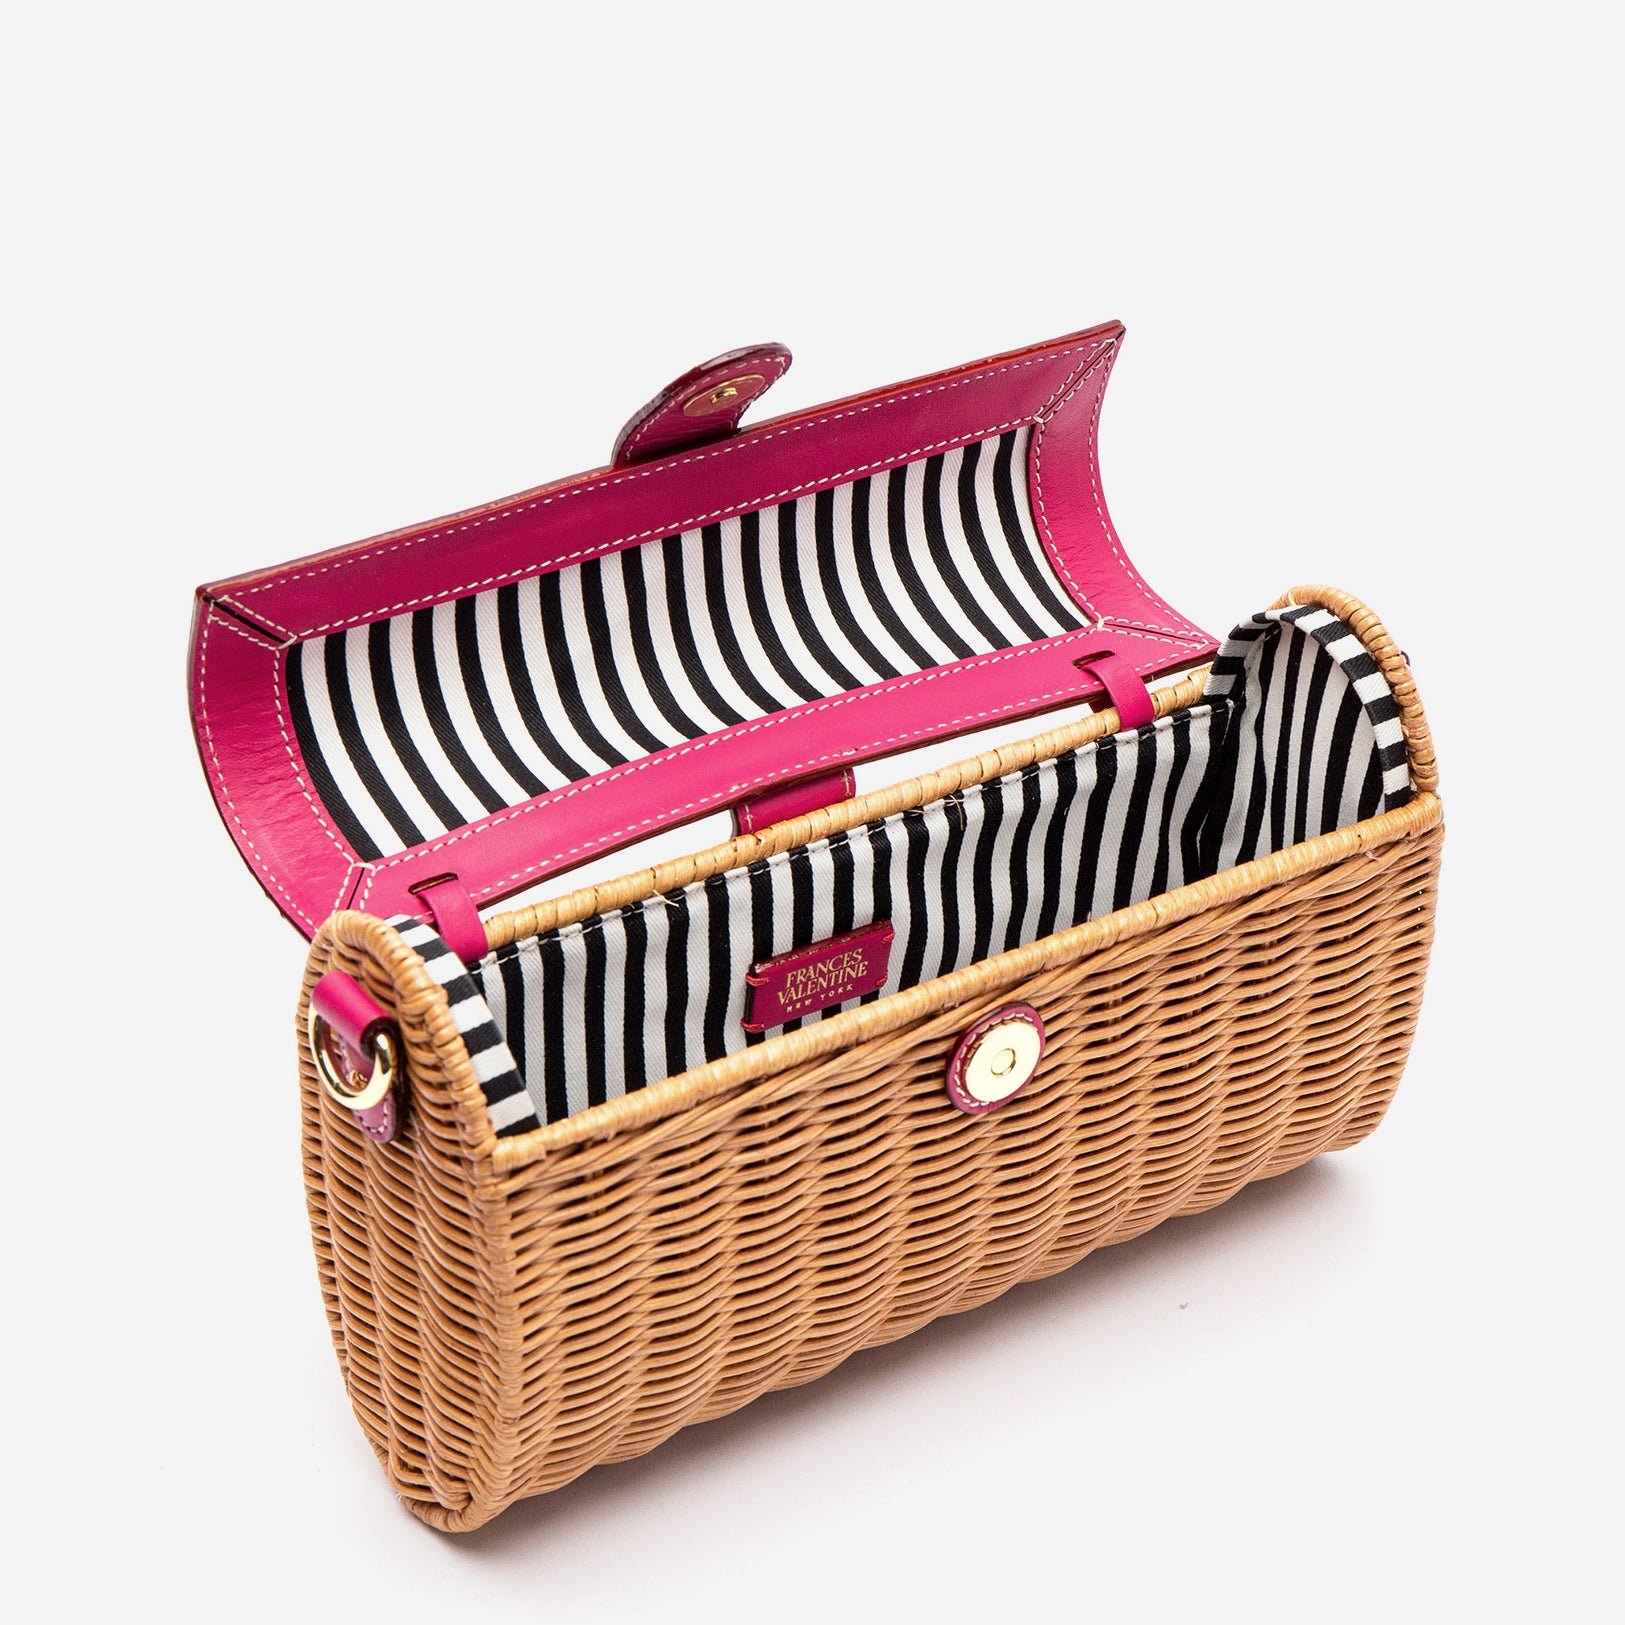 Betsy Wicker Basket Bag Bright Pink